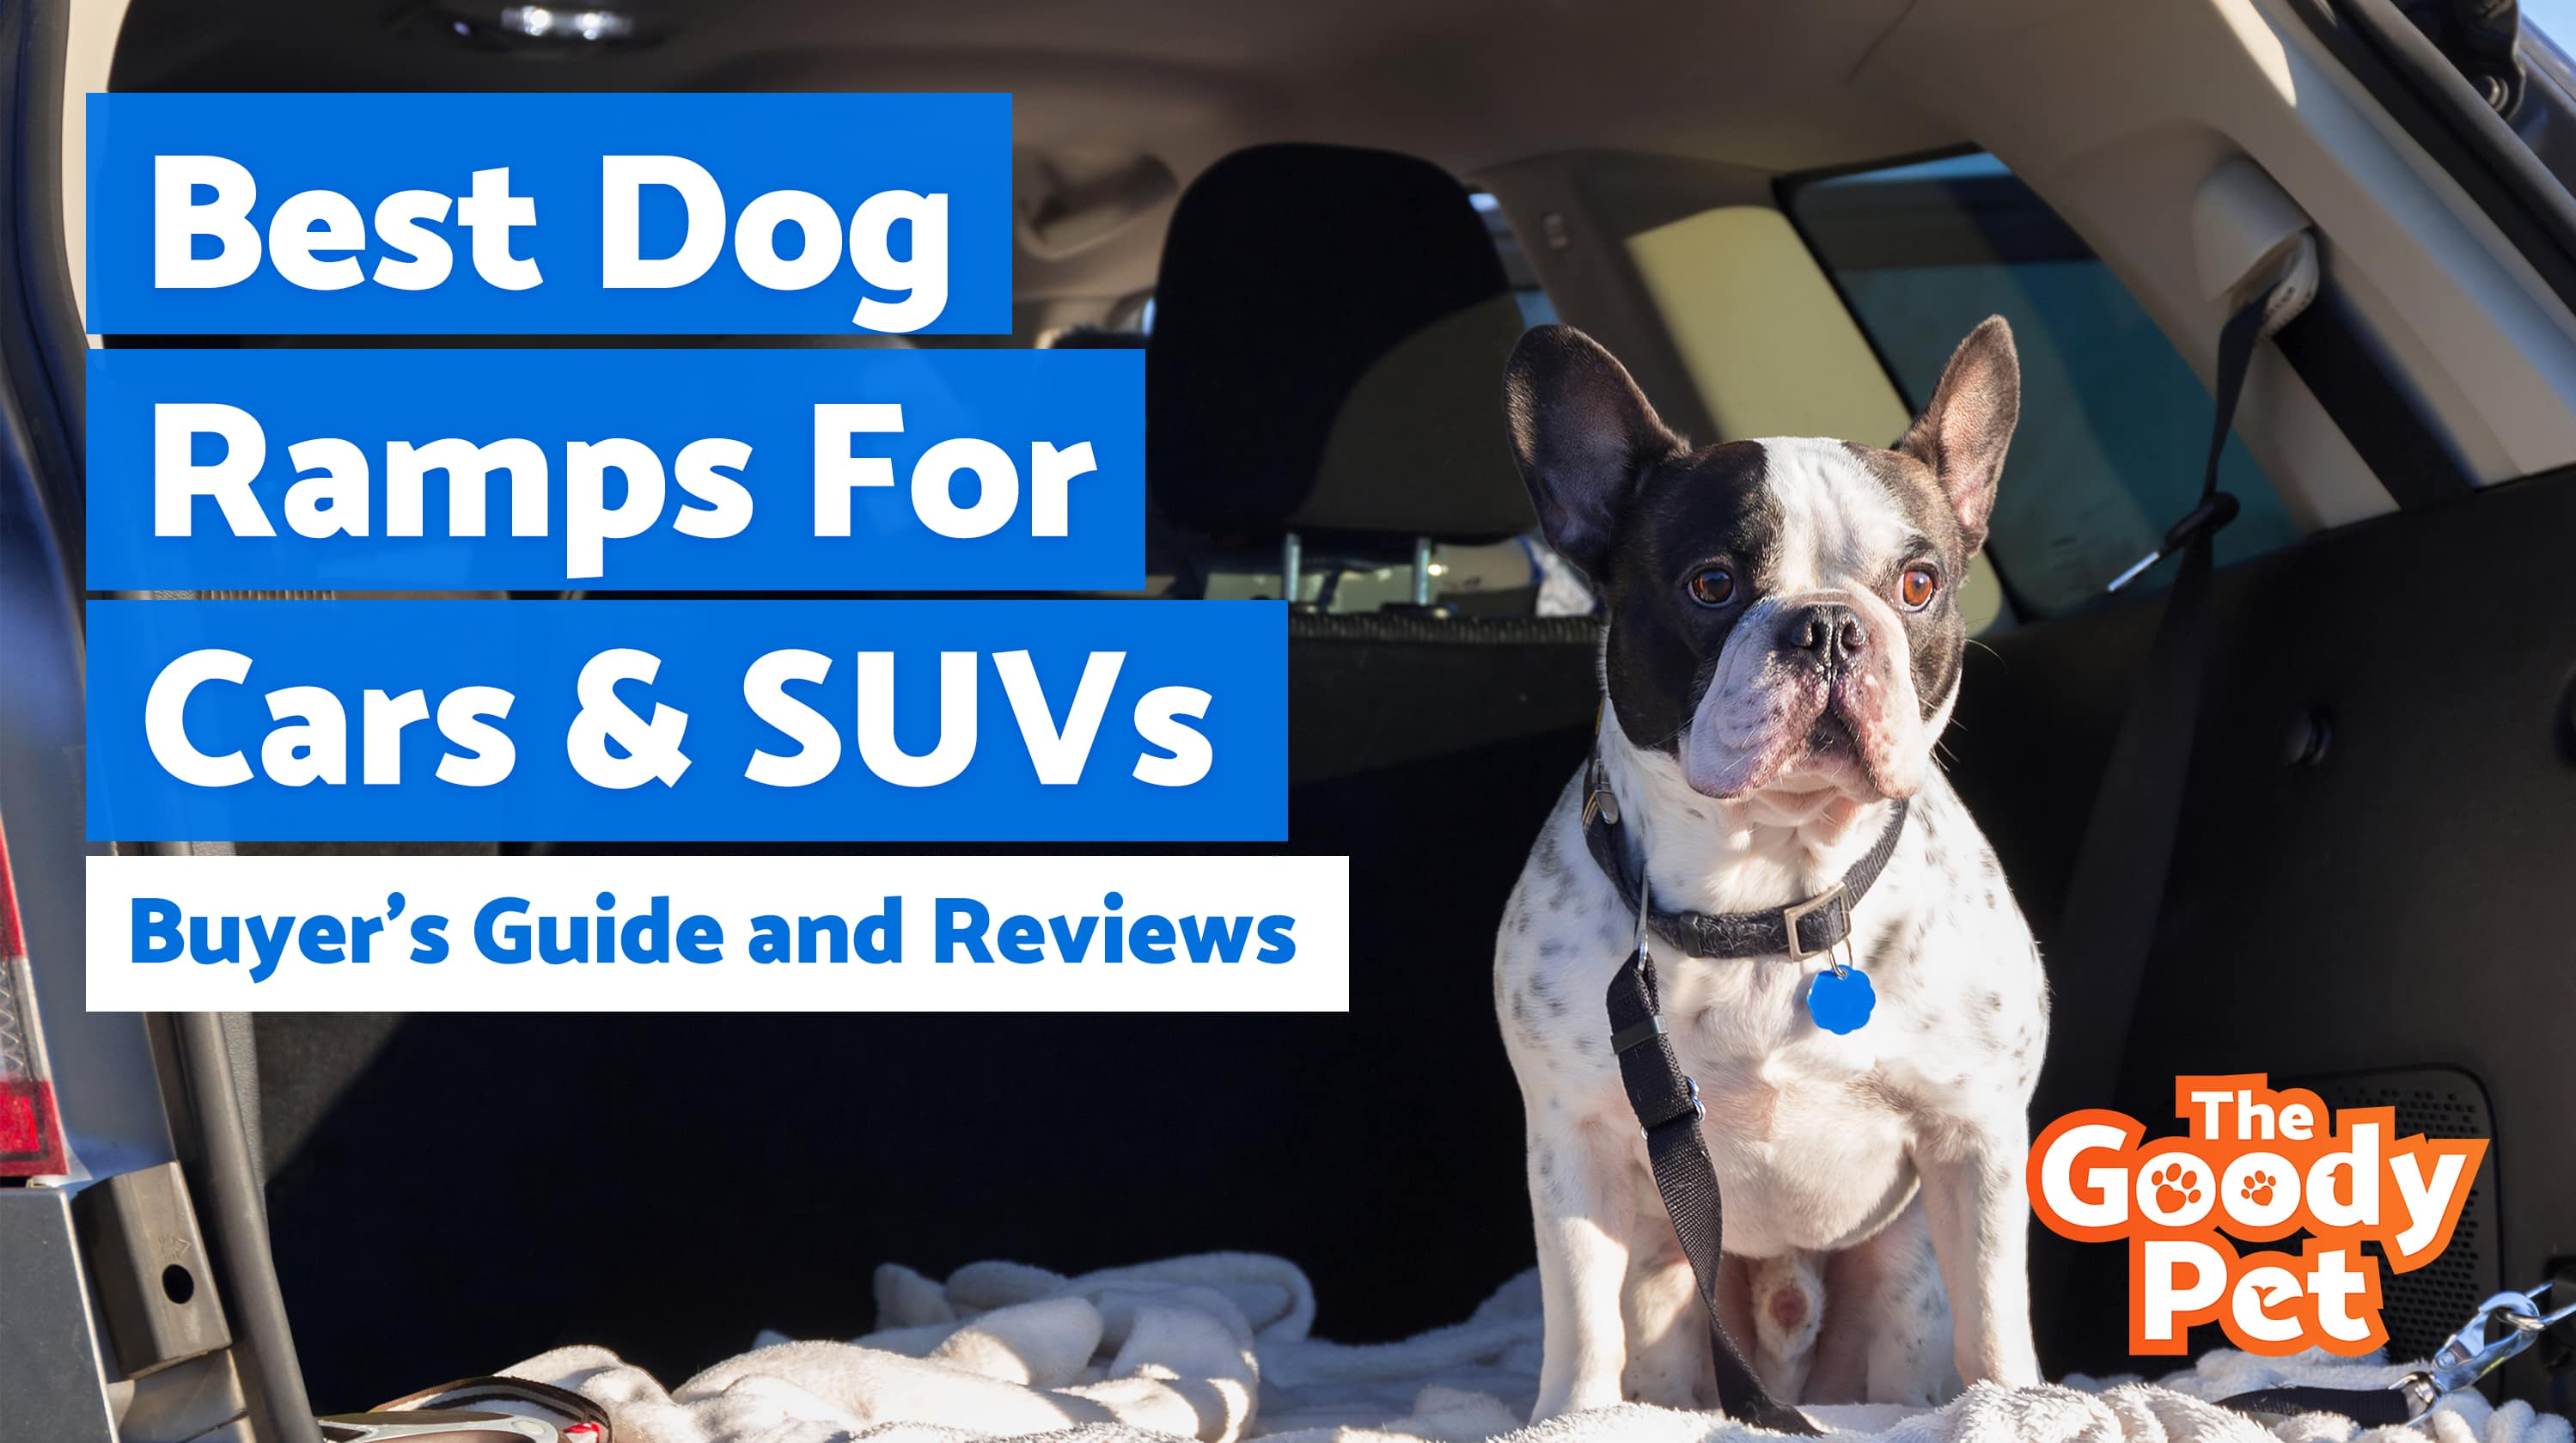 Dog Ramp For Truck >> 8 Best Dog Ramps For Cars & SUVs (March 2020) | TheGoodyPet